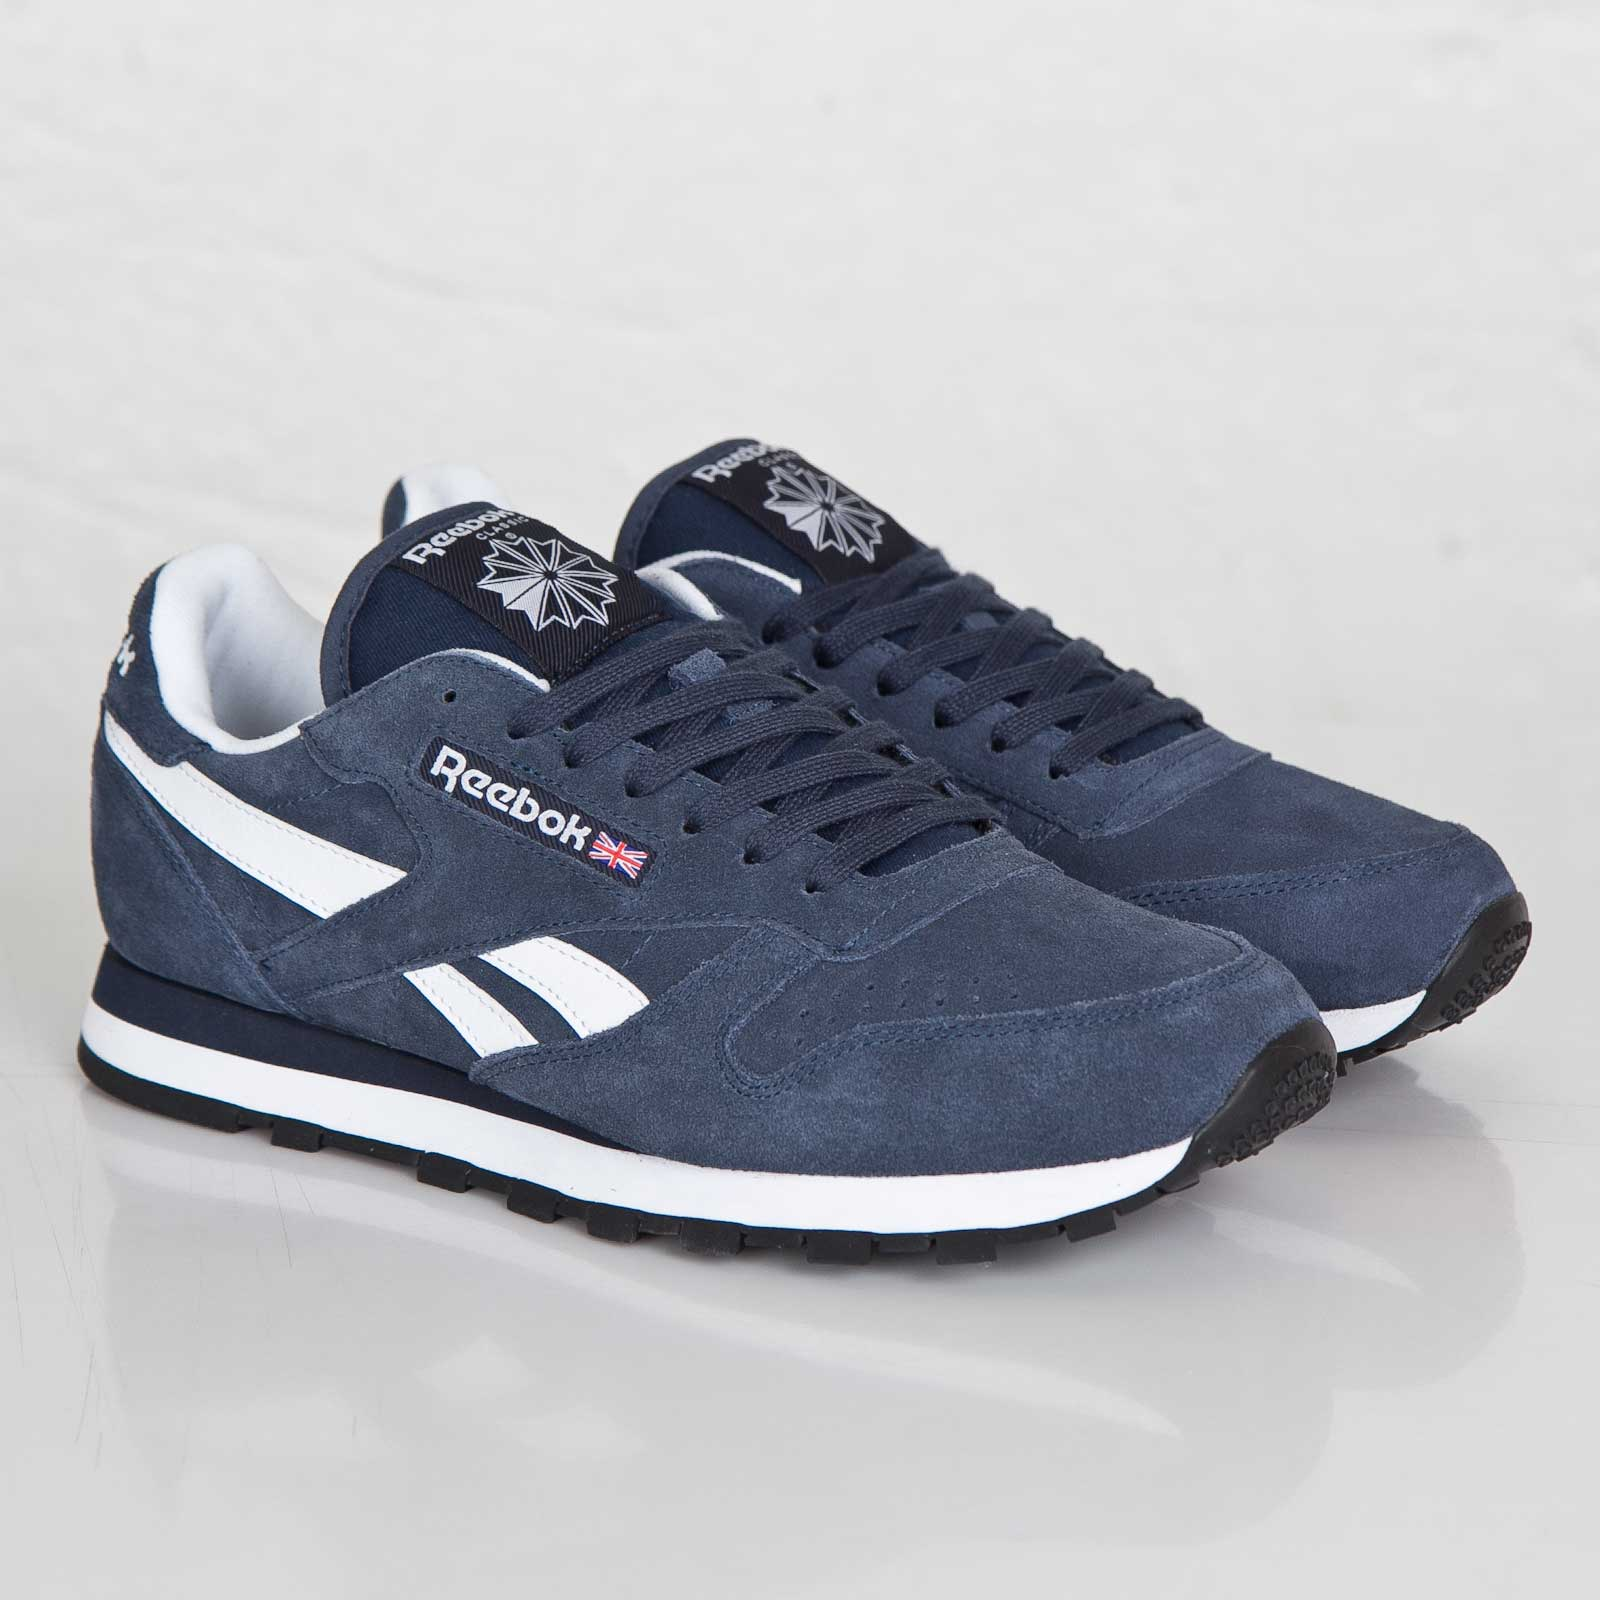 8bb23f2f86aa9 where to buy reebok cl leather suede dark blue 0526f f060f